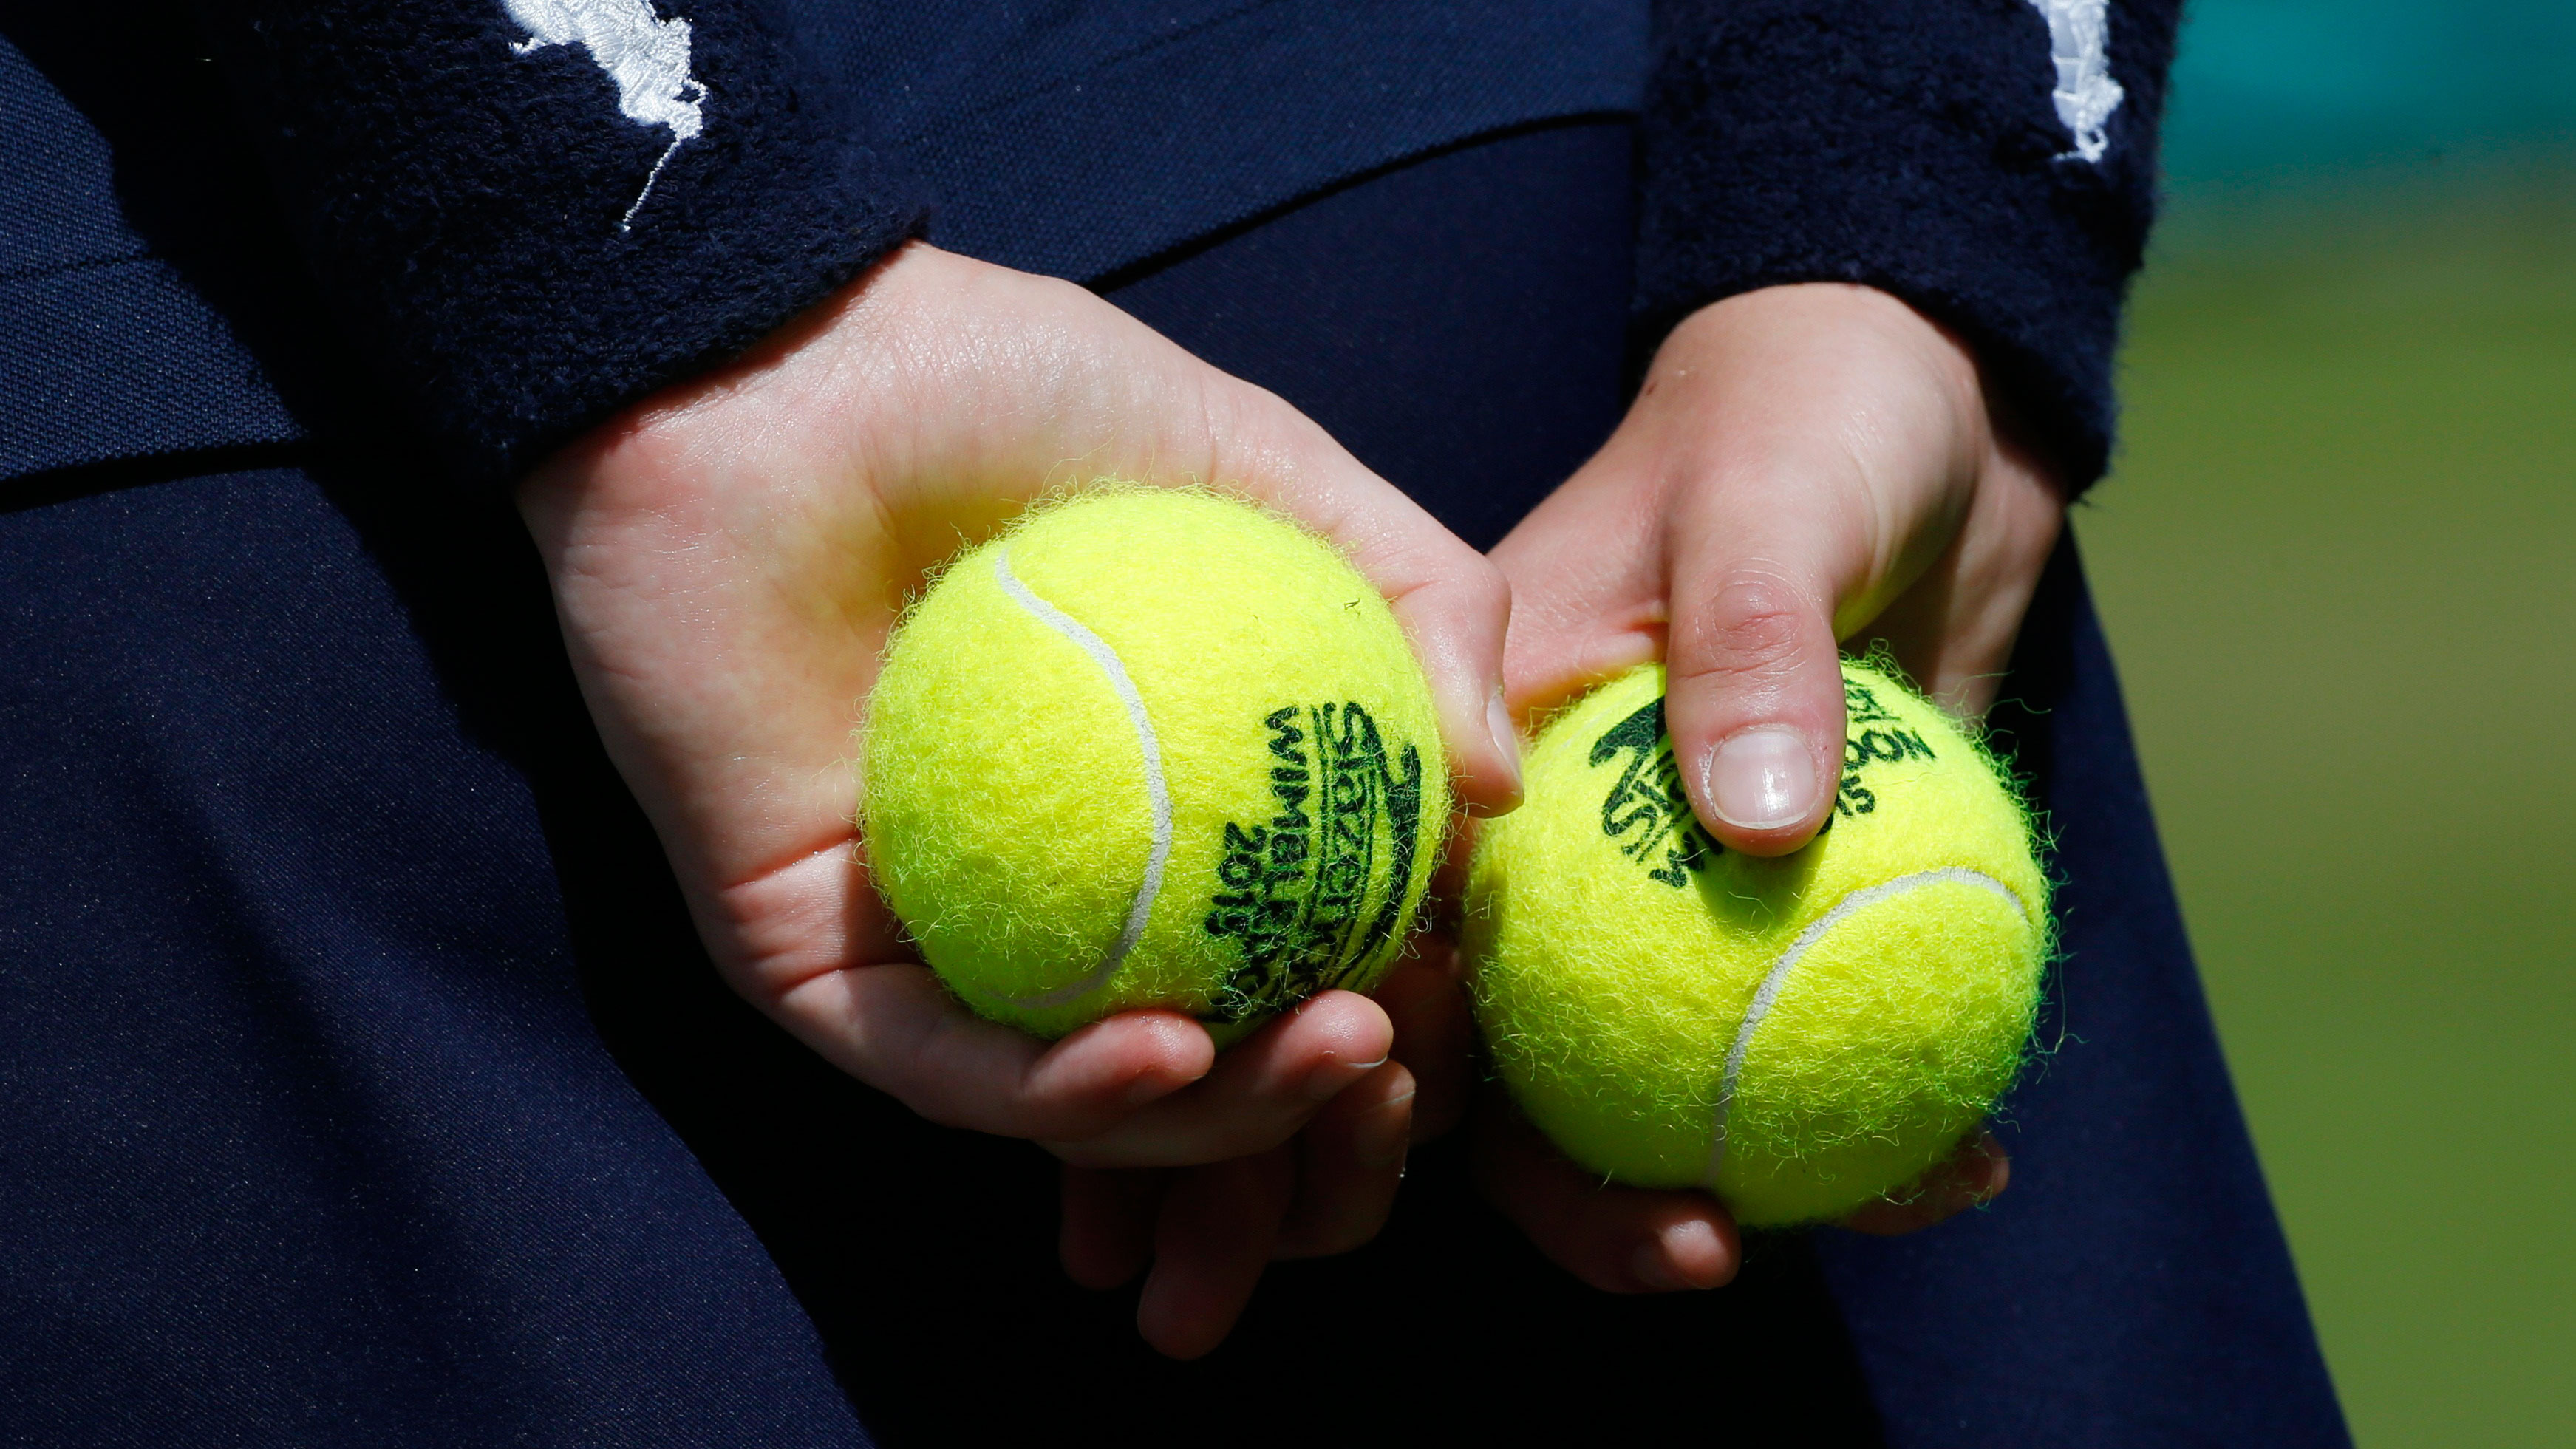 A ball girl holds tennis balls at the Wimbledon Tennis Championships in London